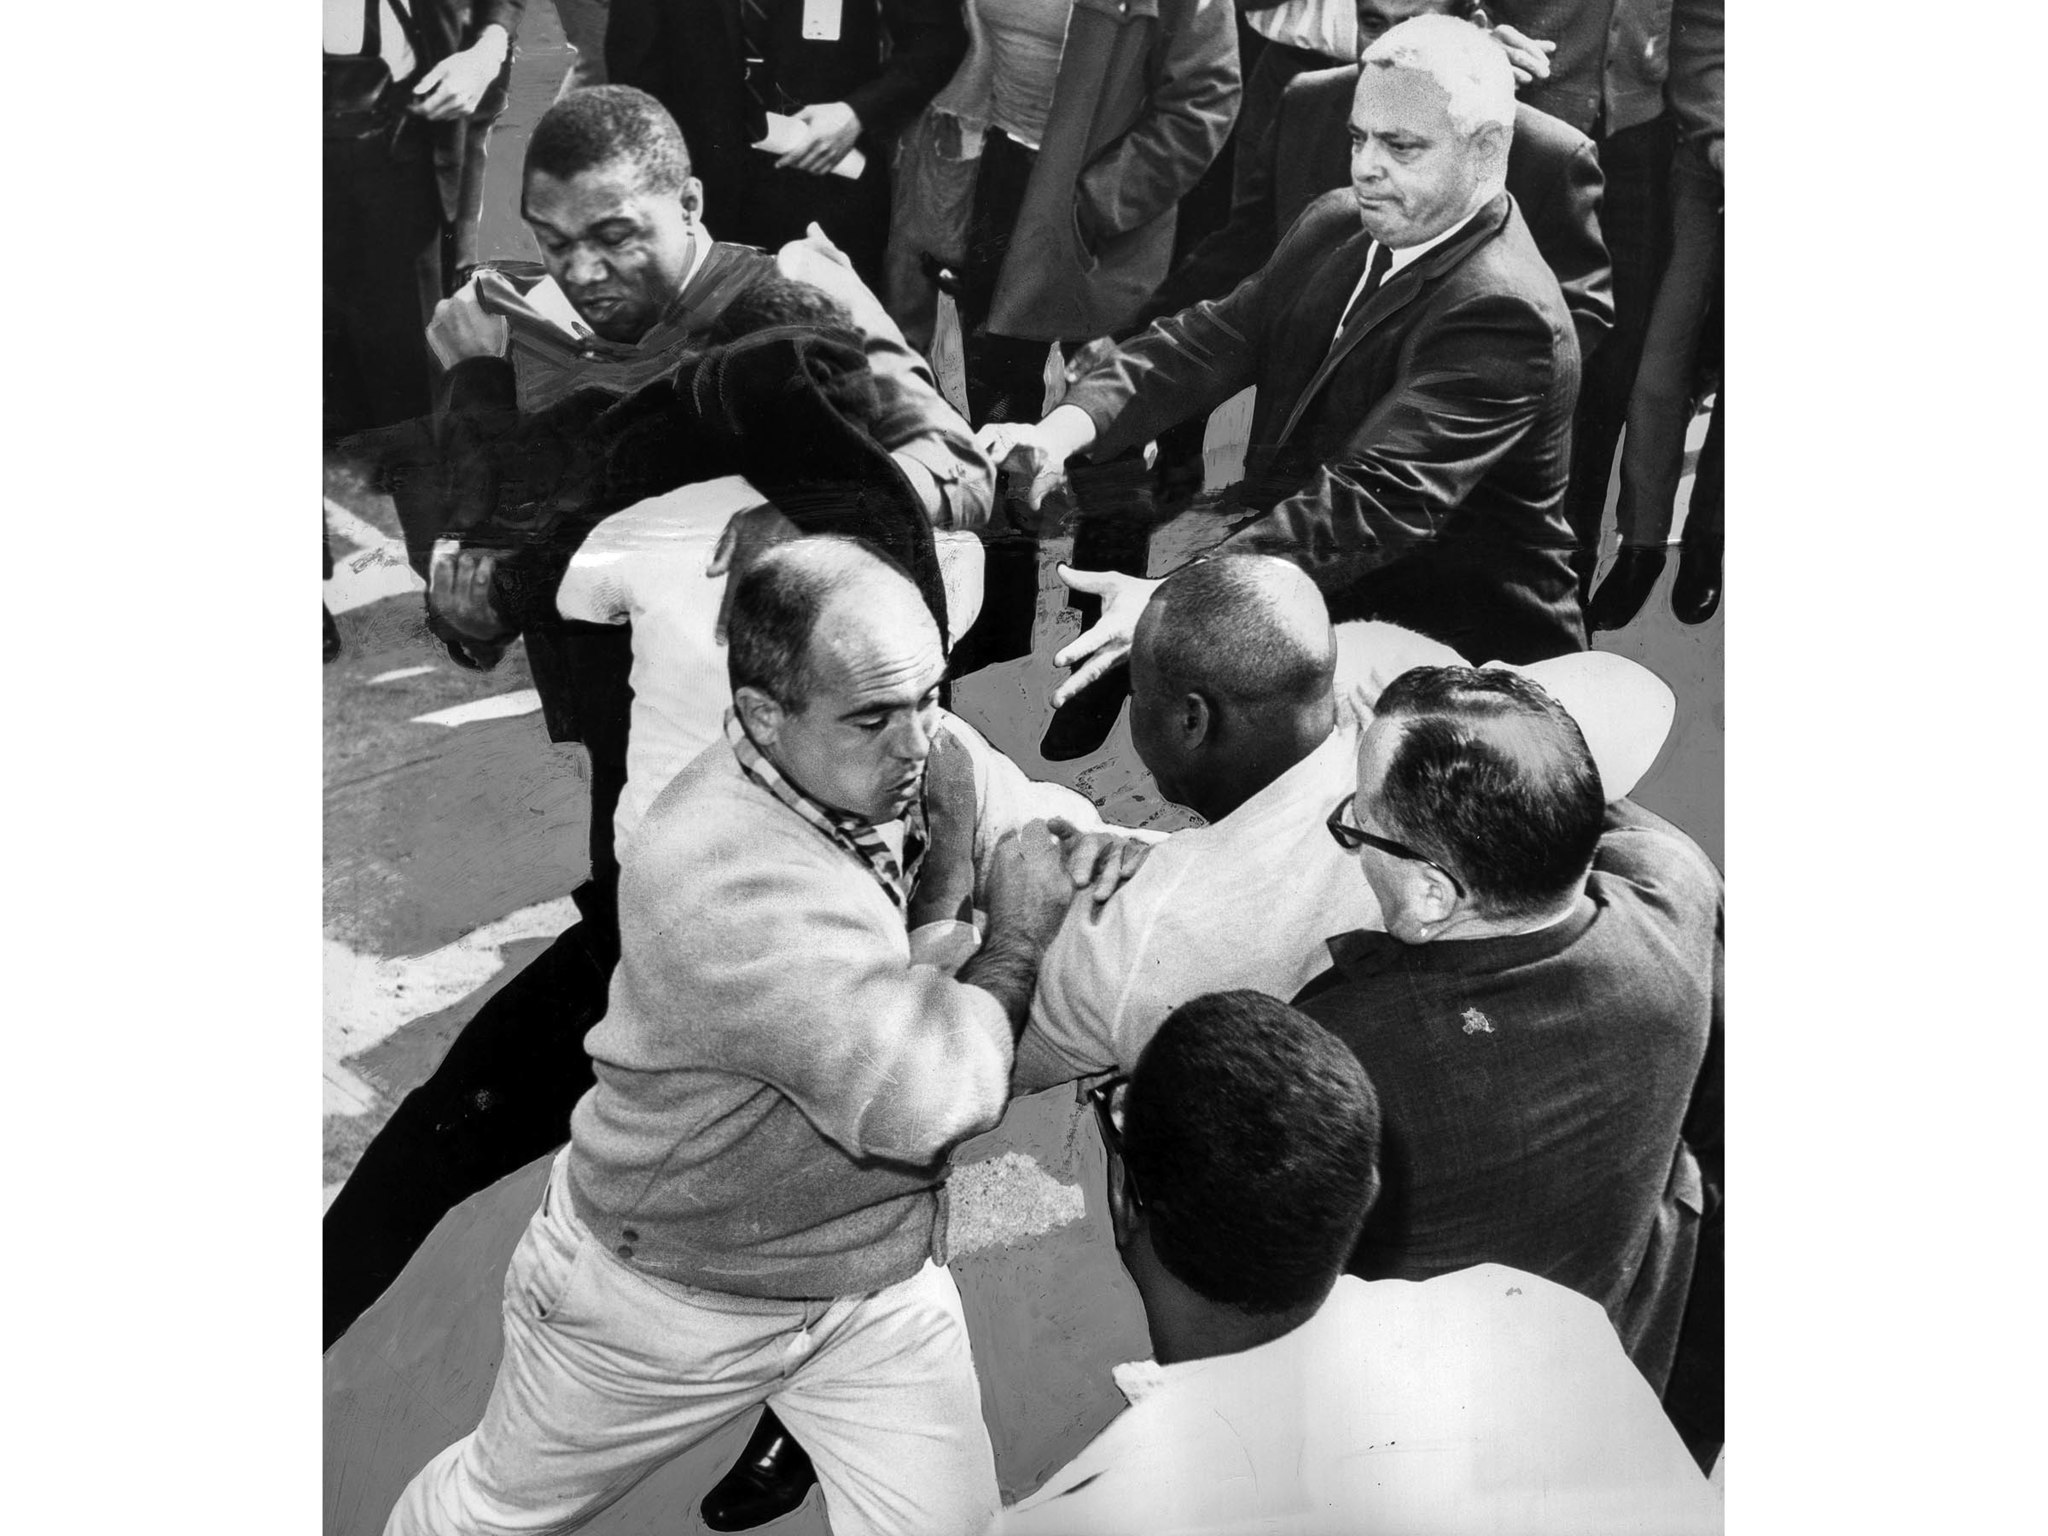 March 10, 1965: A U.S. Marshal, upper left, another with checkered shirt, lower left, and third in s